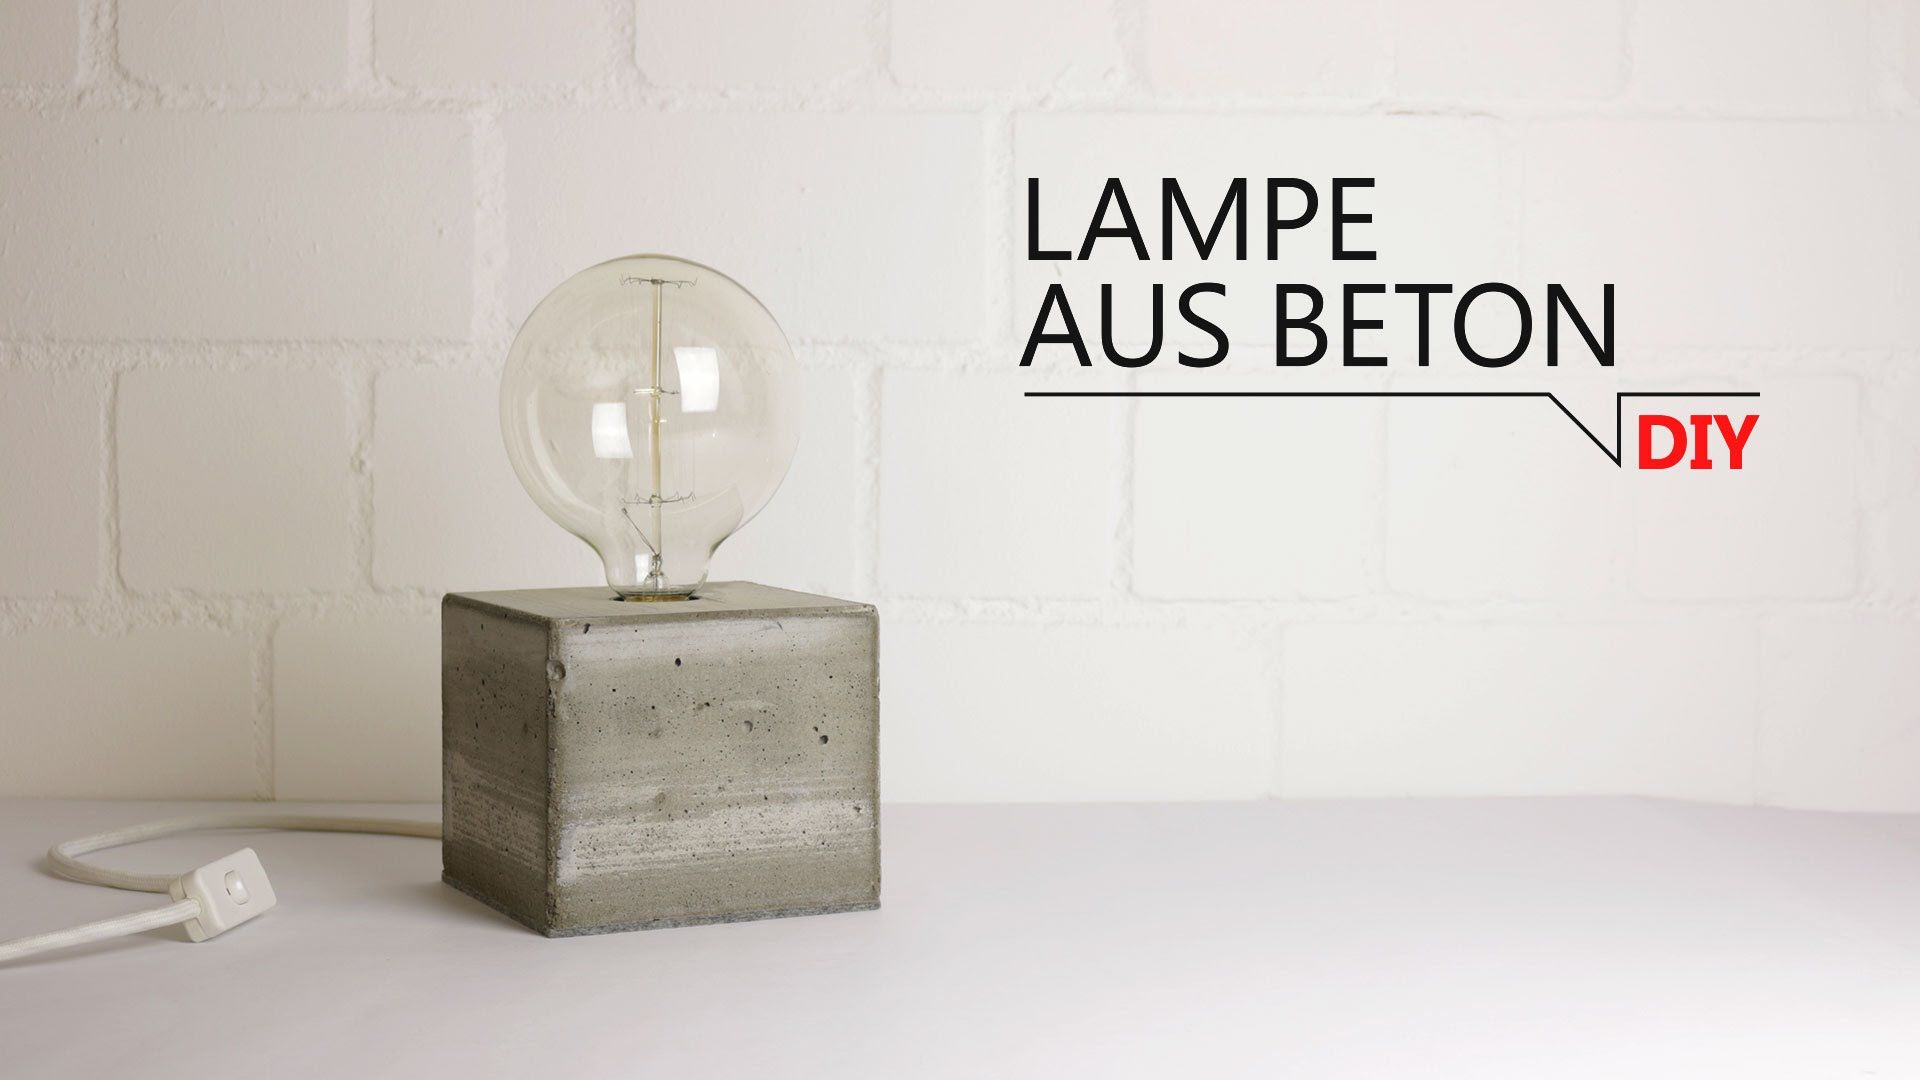 diy lampe aus beton ideen pinterest diy lampe. Black Bedroom Furniture Sets. Home Design Ideas